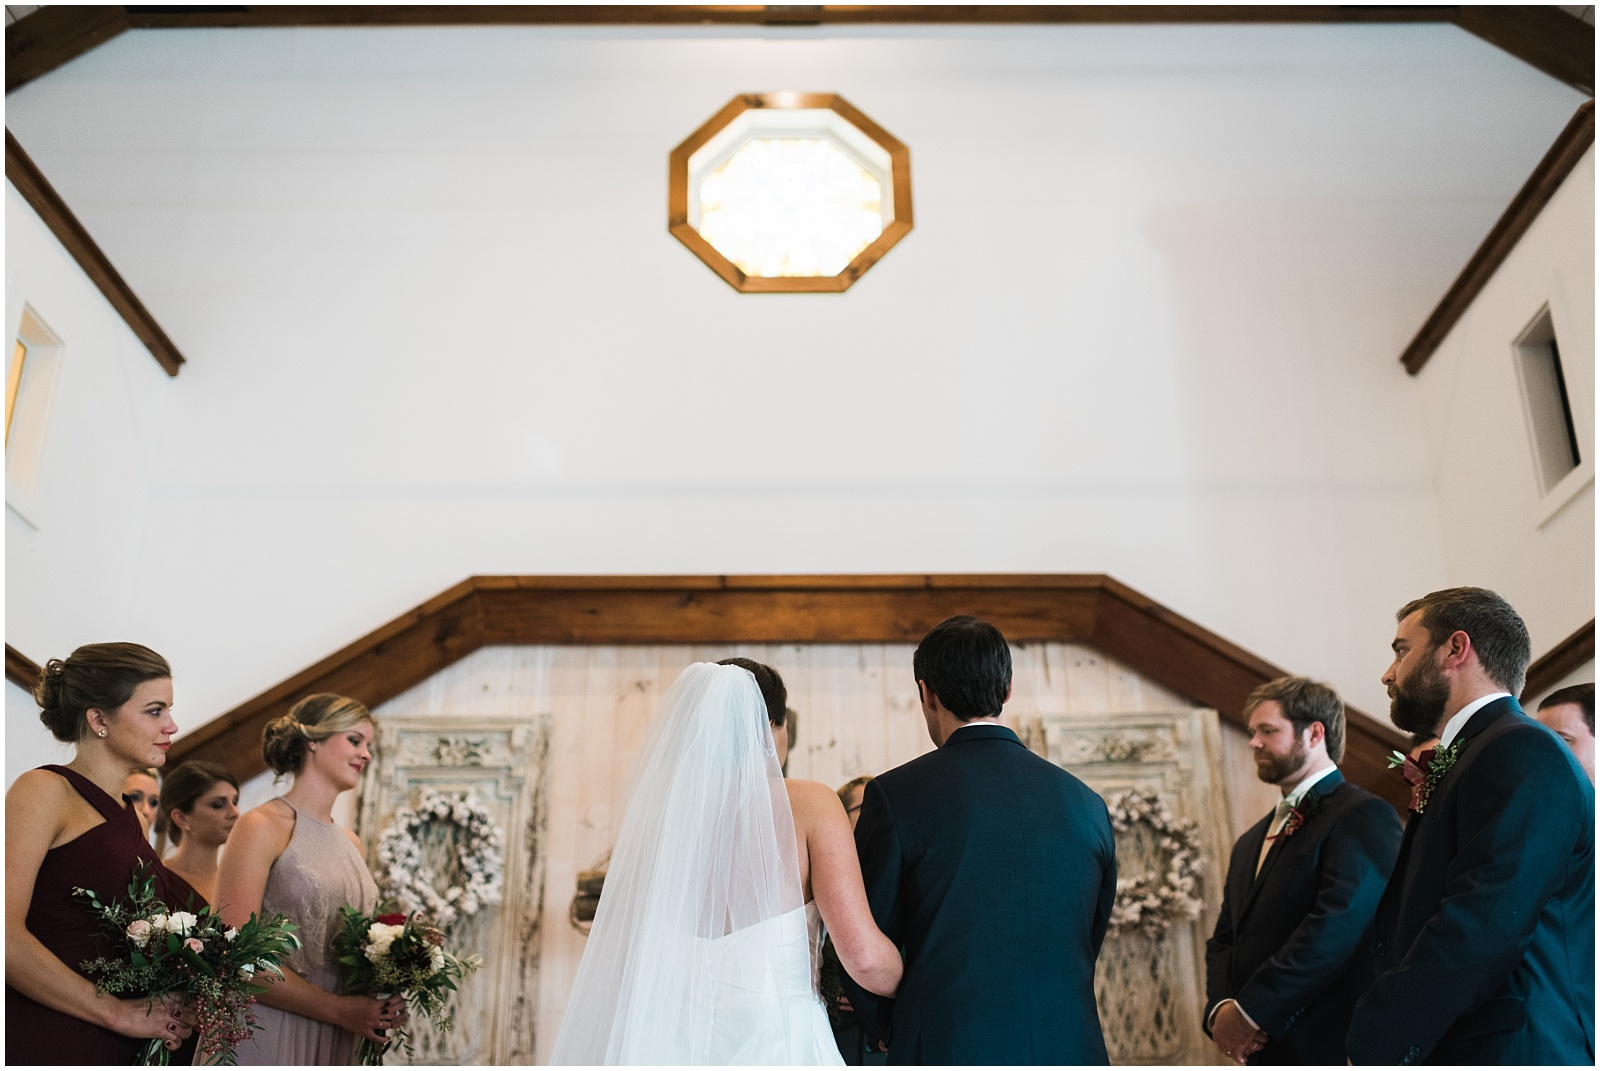 B&G at altar during ceremony